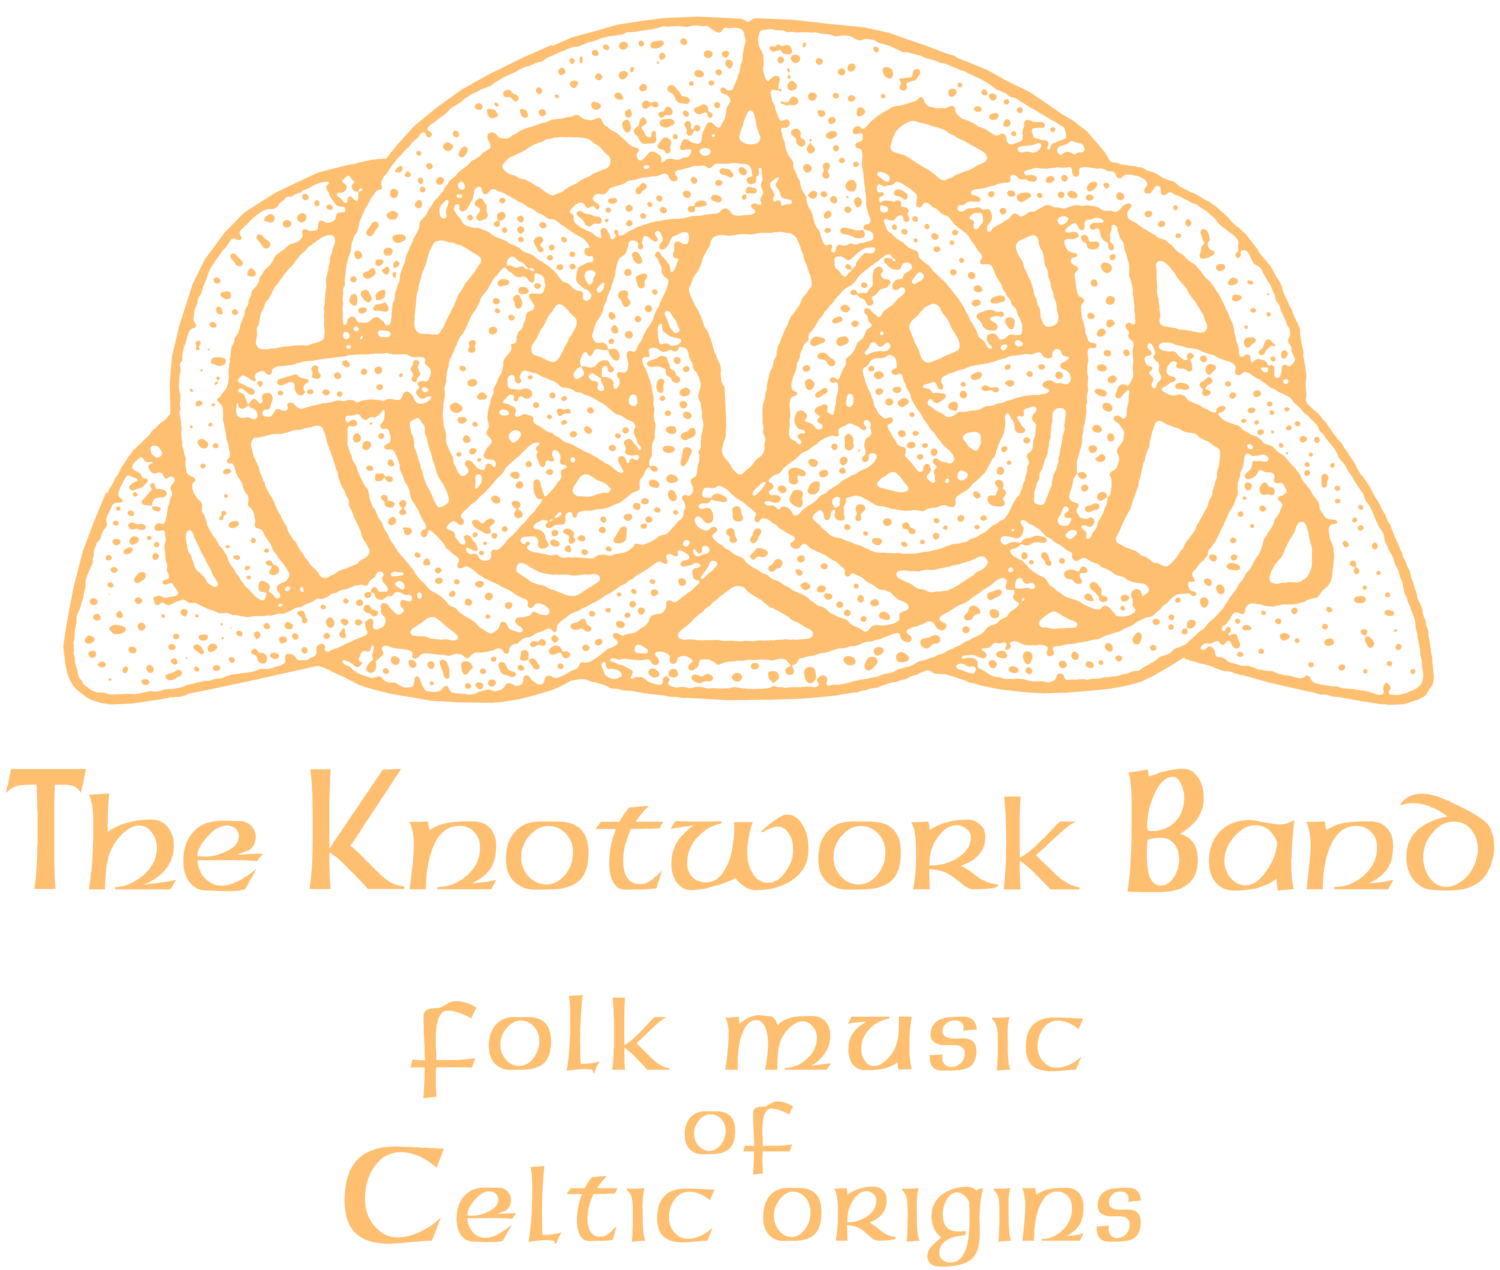 The Knotwork Band